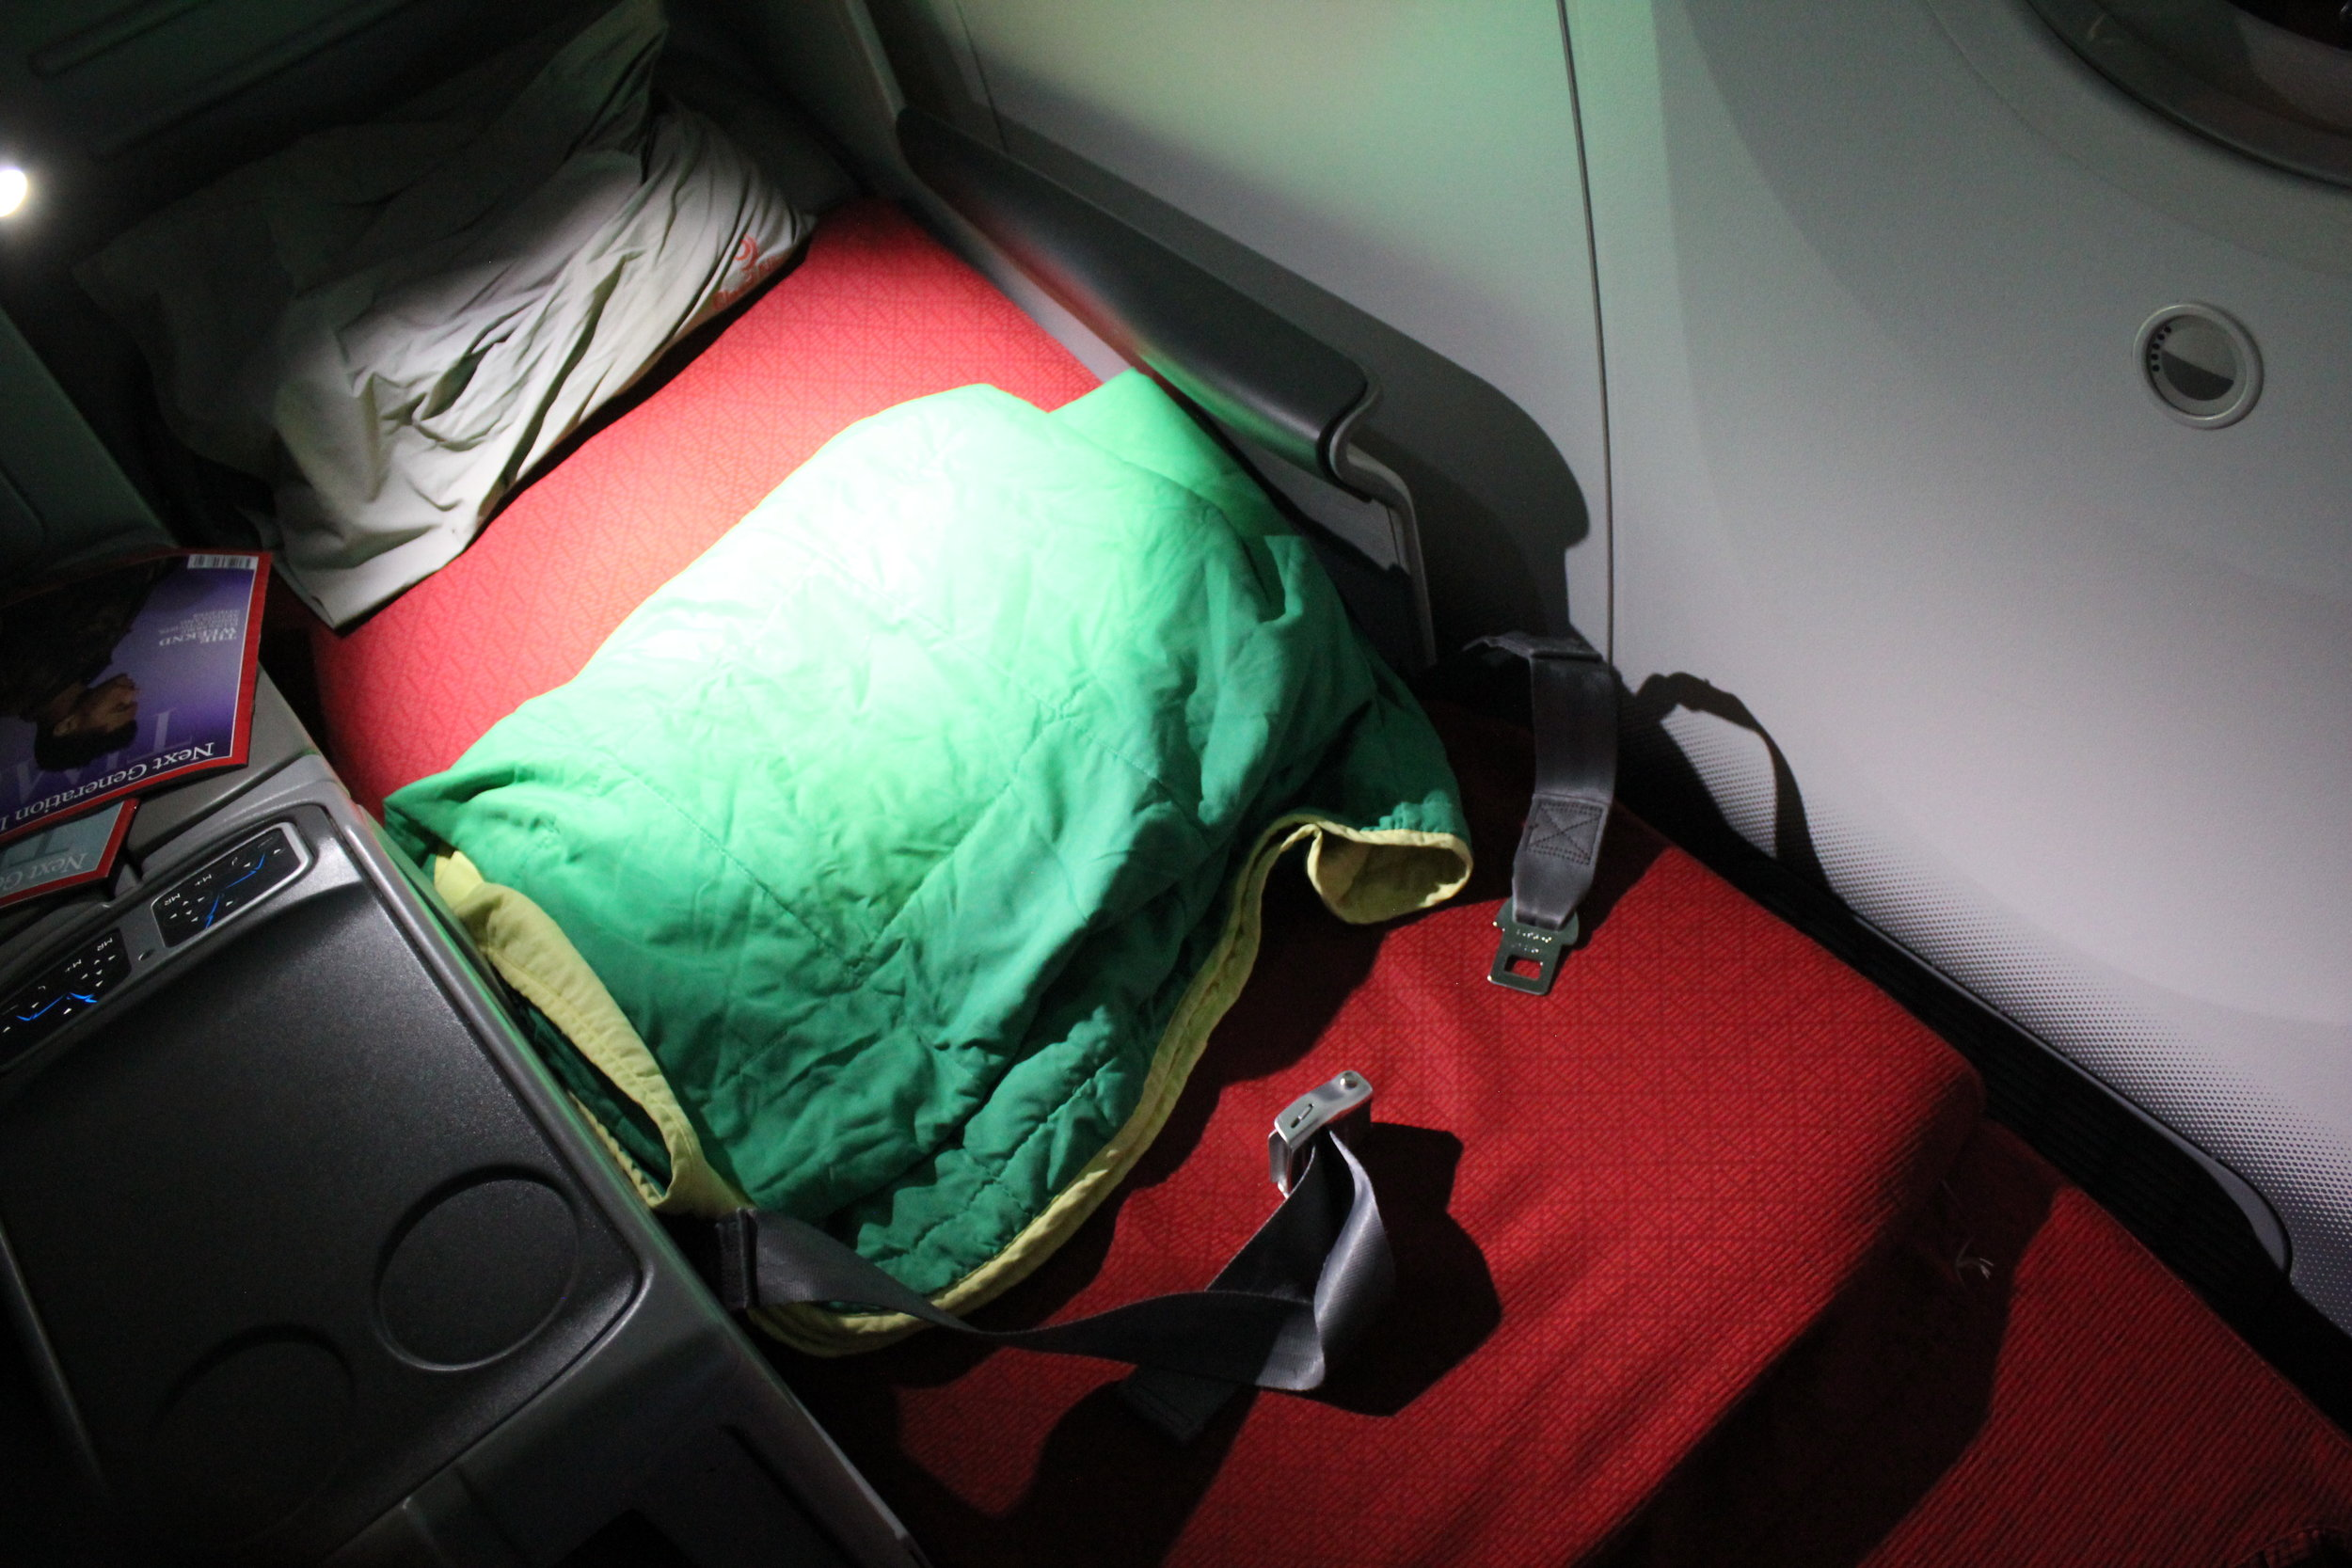 Ethiopian Airlines business class – Bed